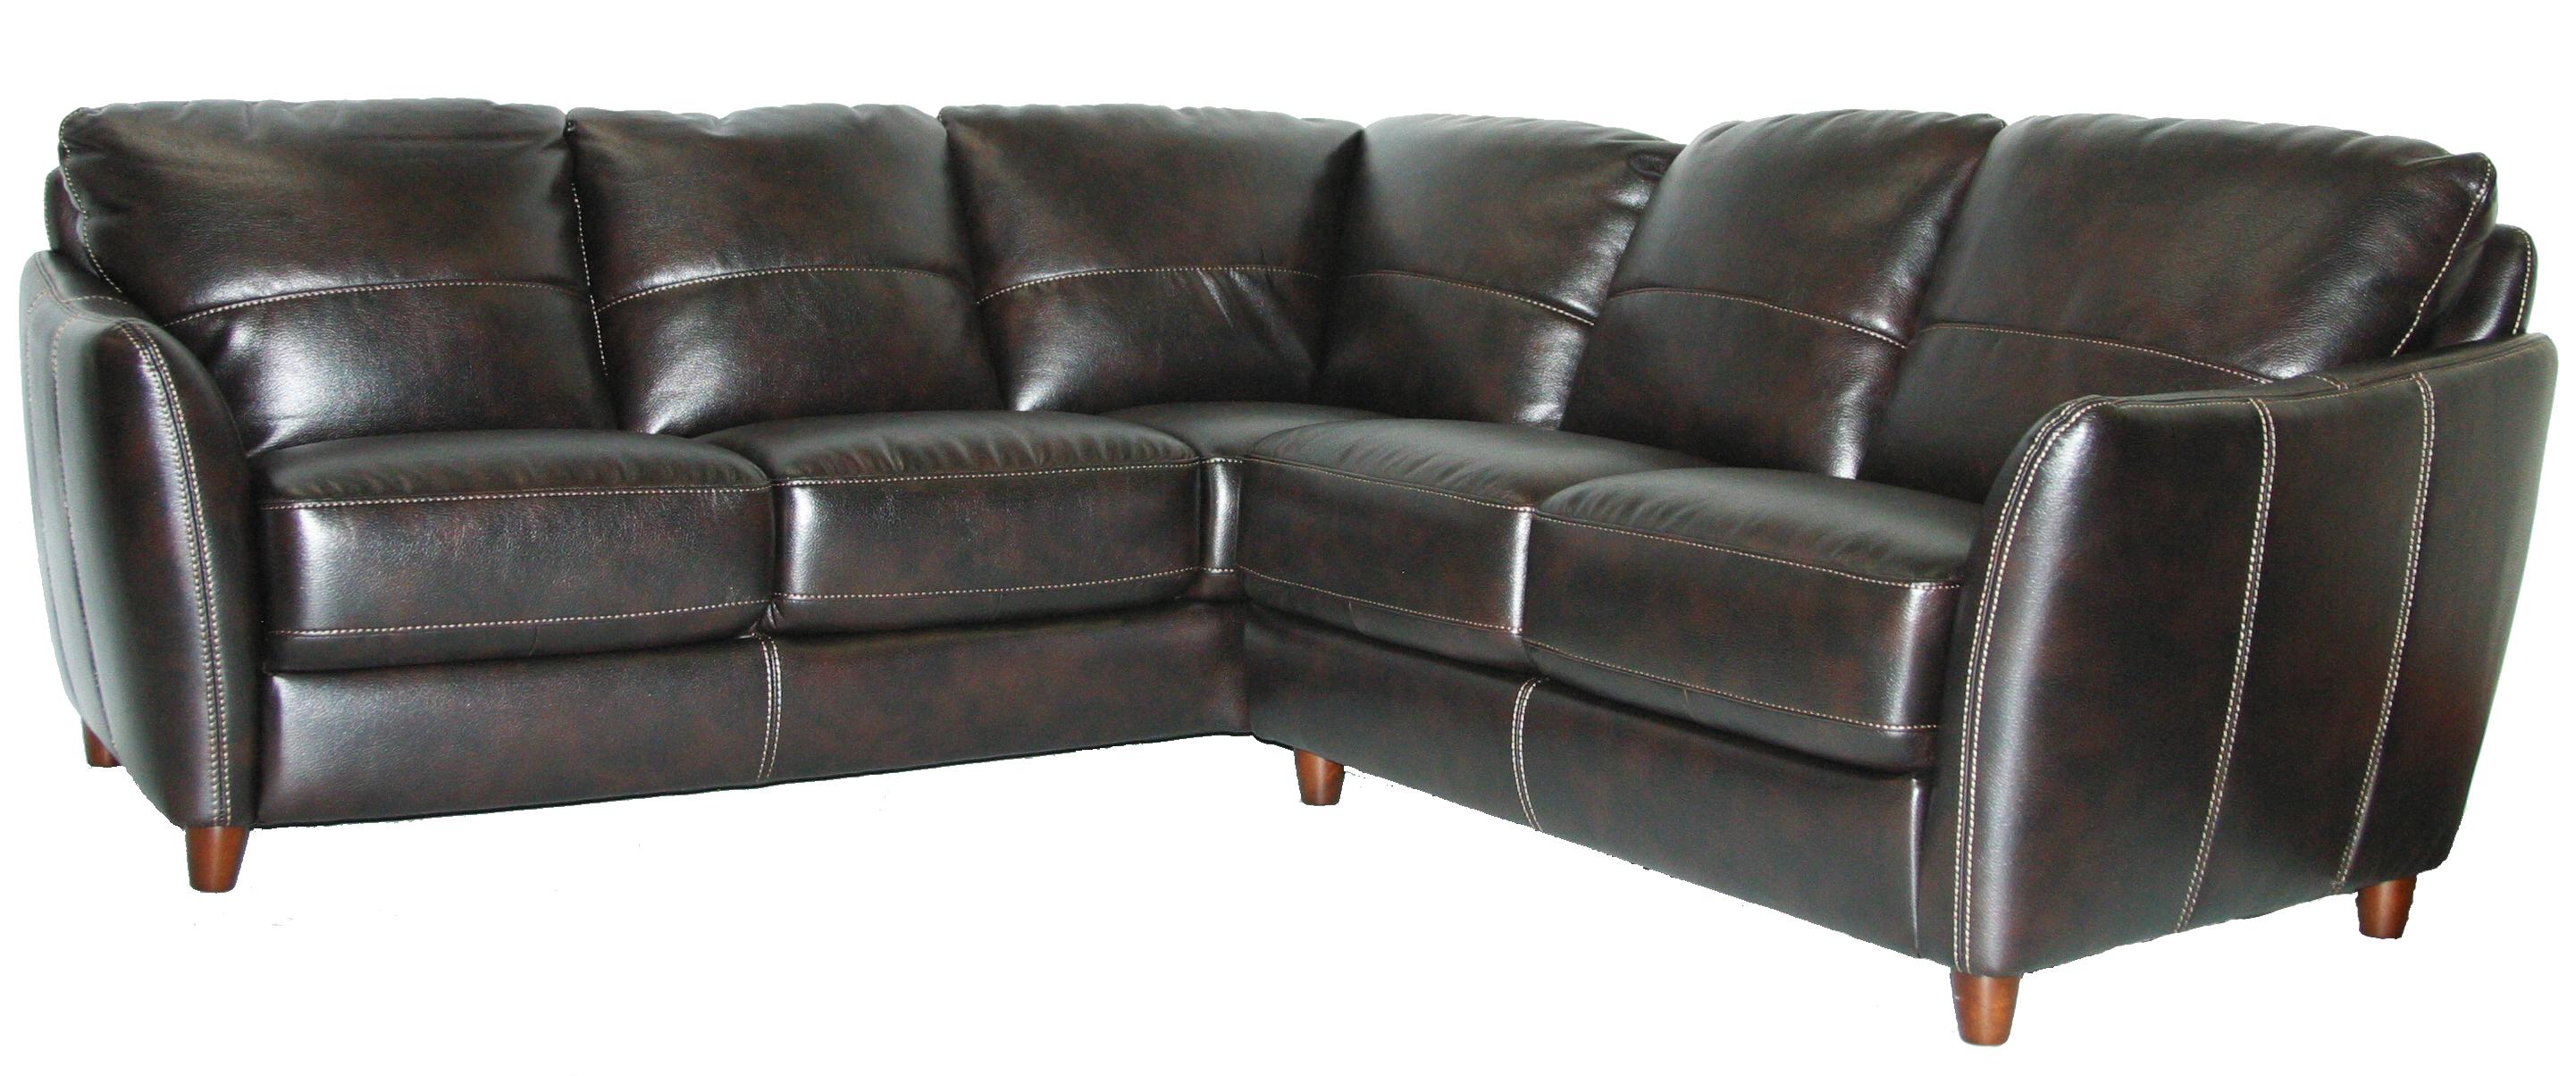 3356 Sectional Sofa by Violino at Furniture Superstore - Rochester, MN